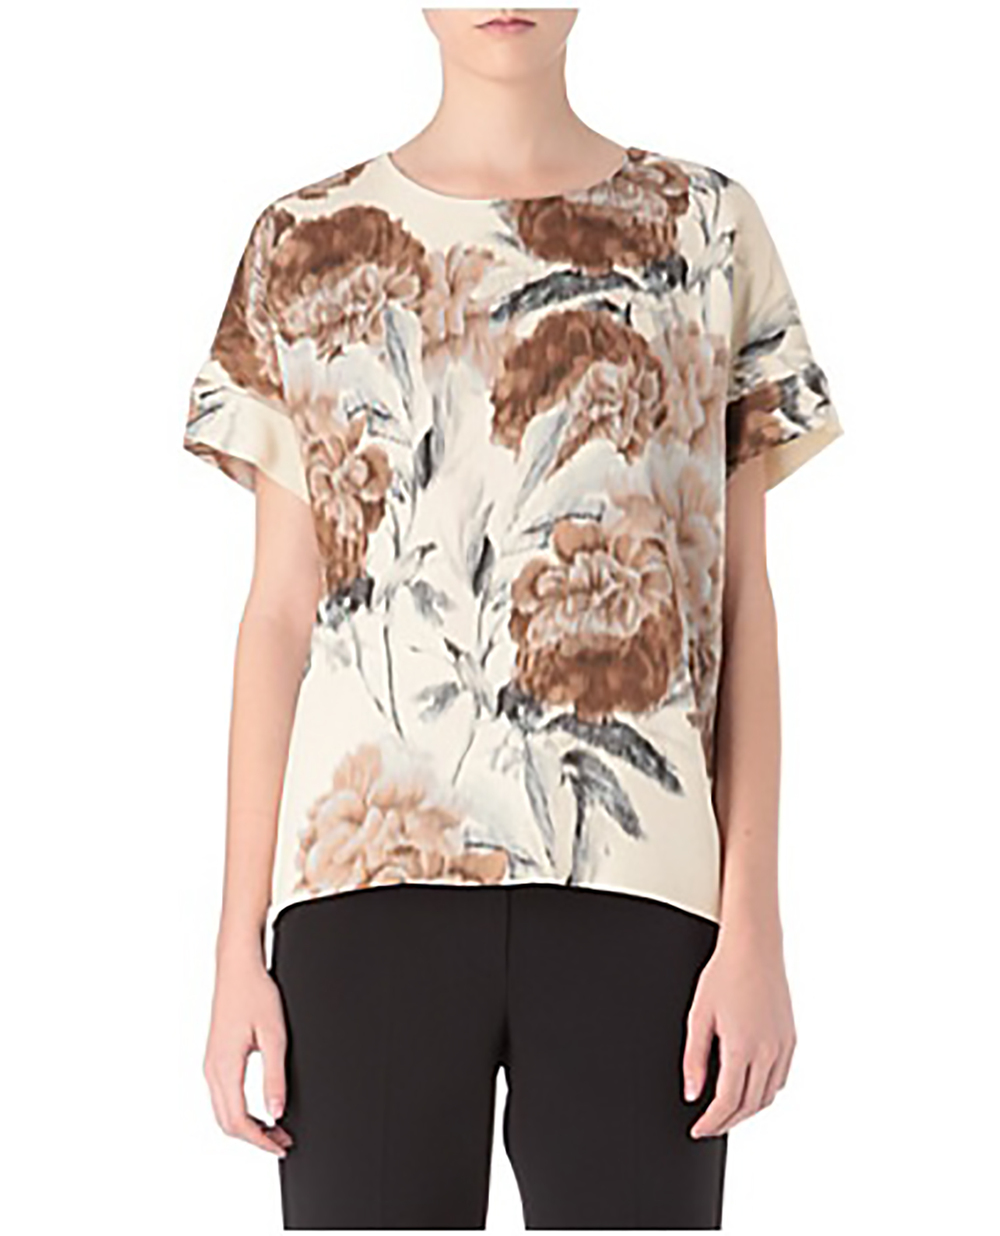 selfridges no. 21 floral print top 1500.jpg